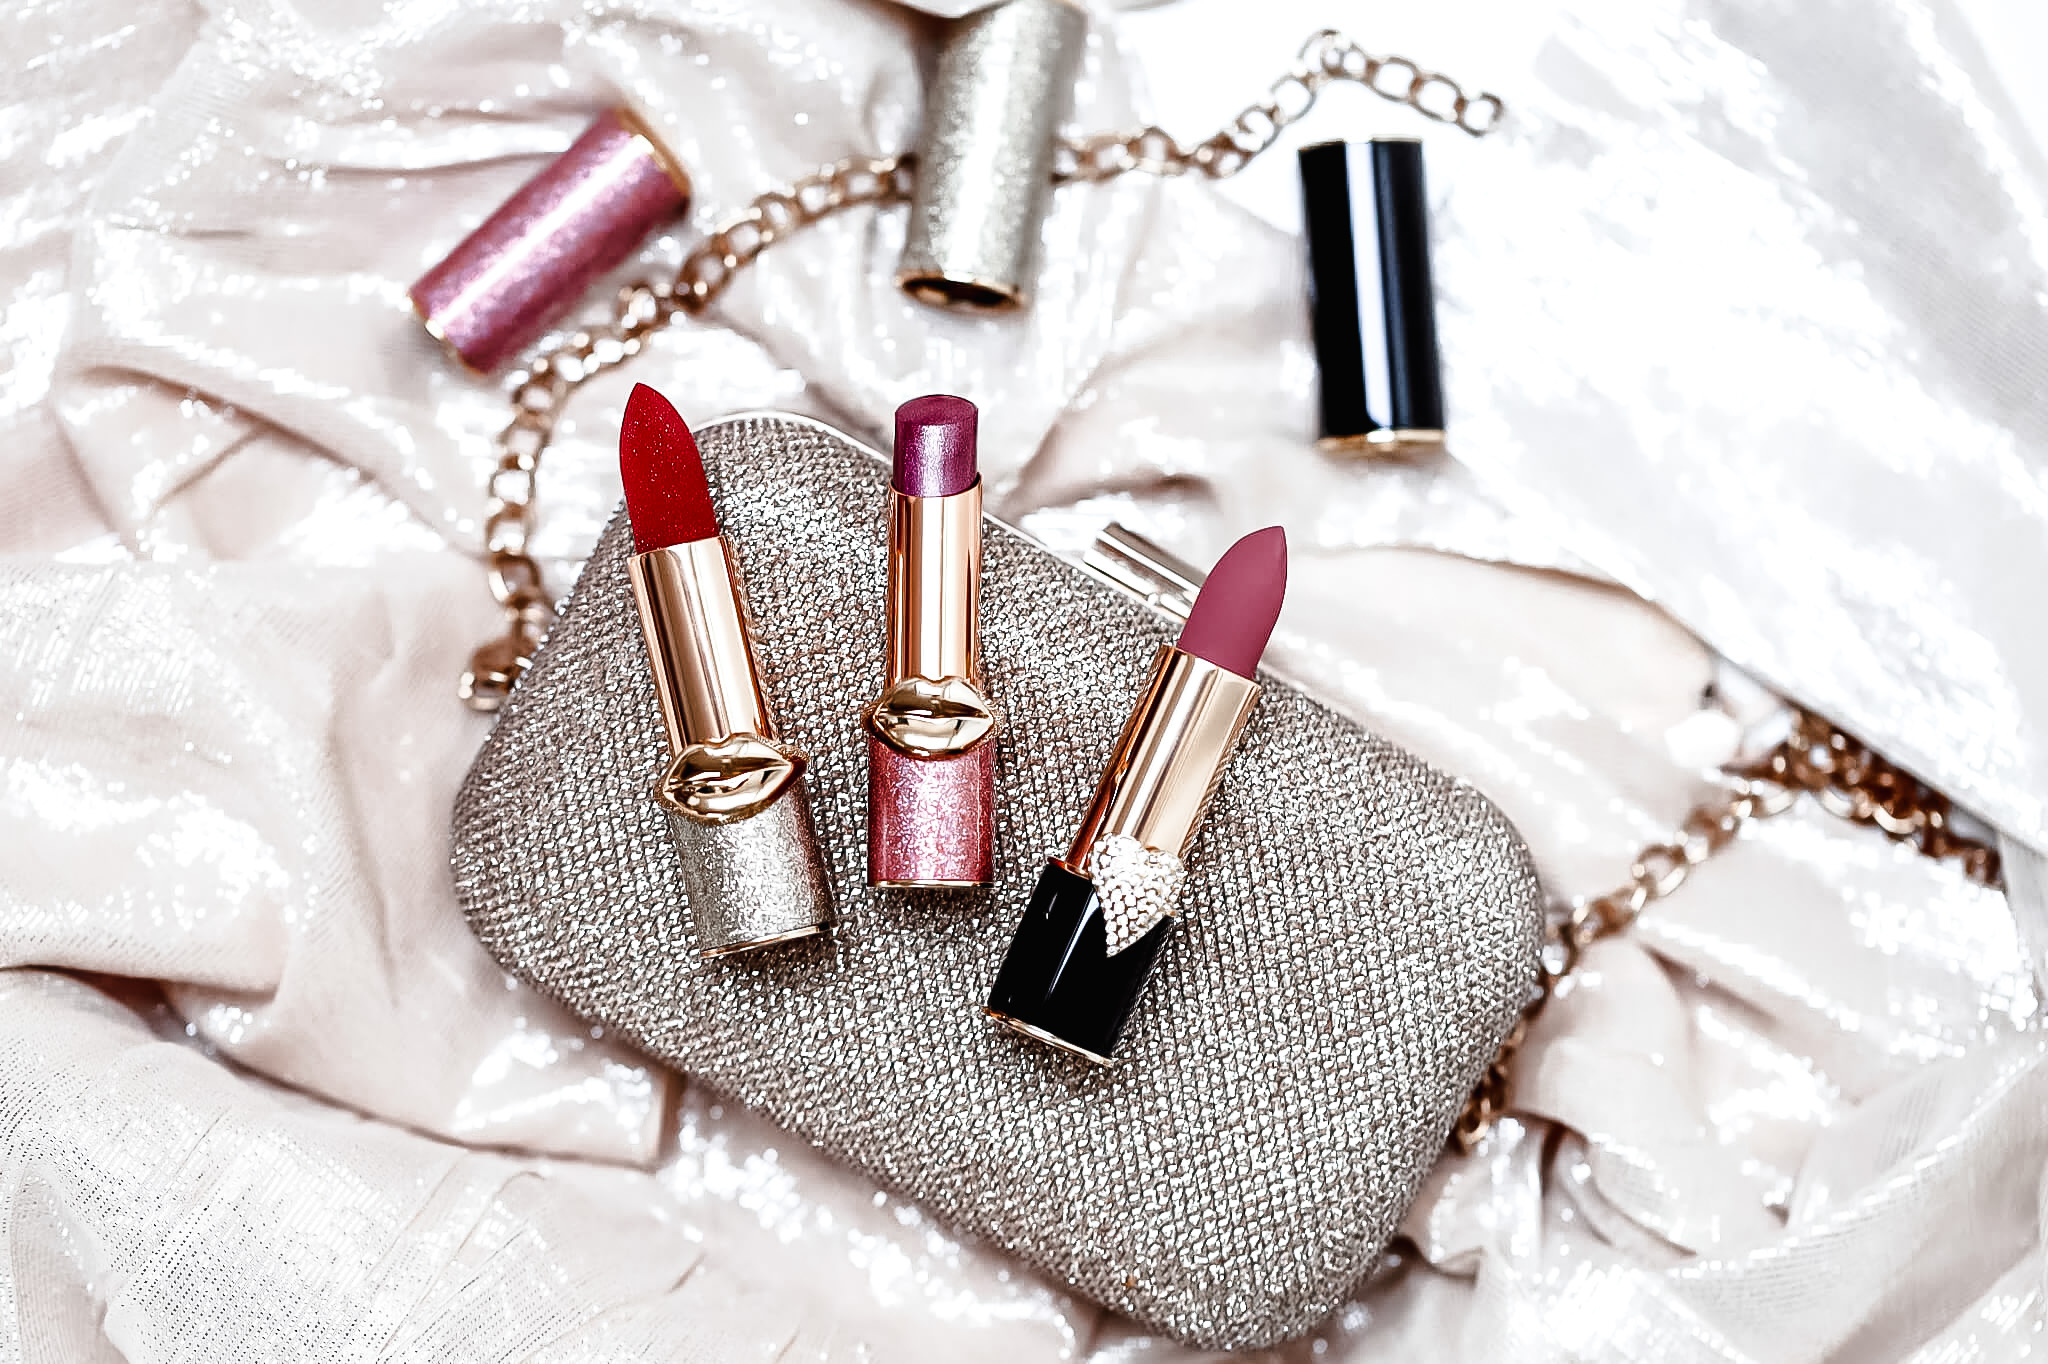 Pat McGrath BlitzTrance Revel Red MatteTrance Omi Lip Fetish Astral